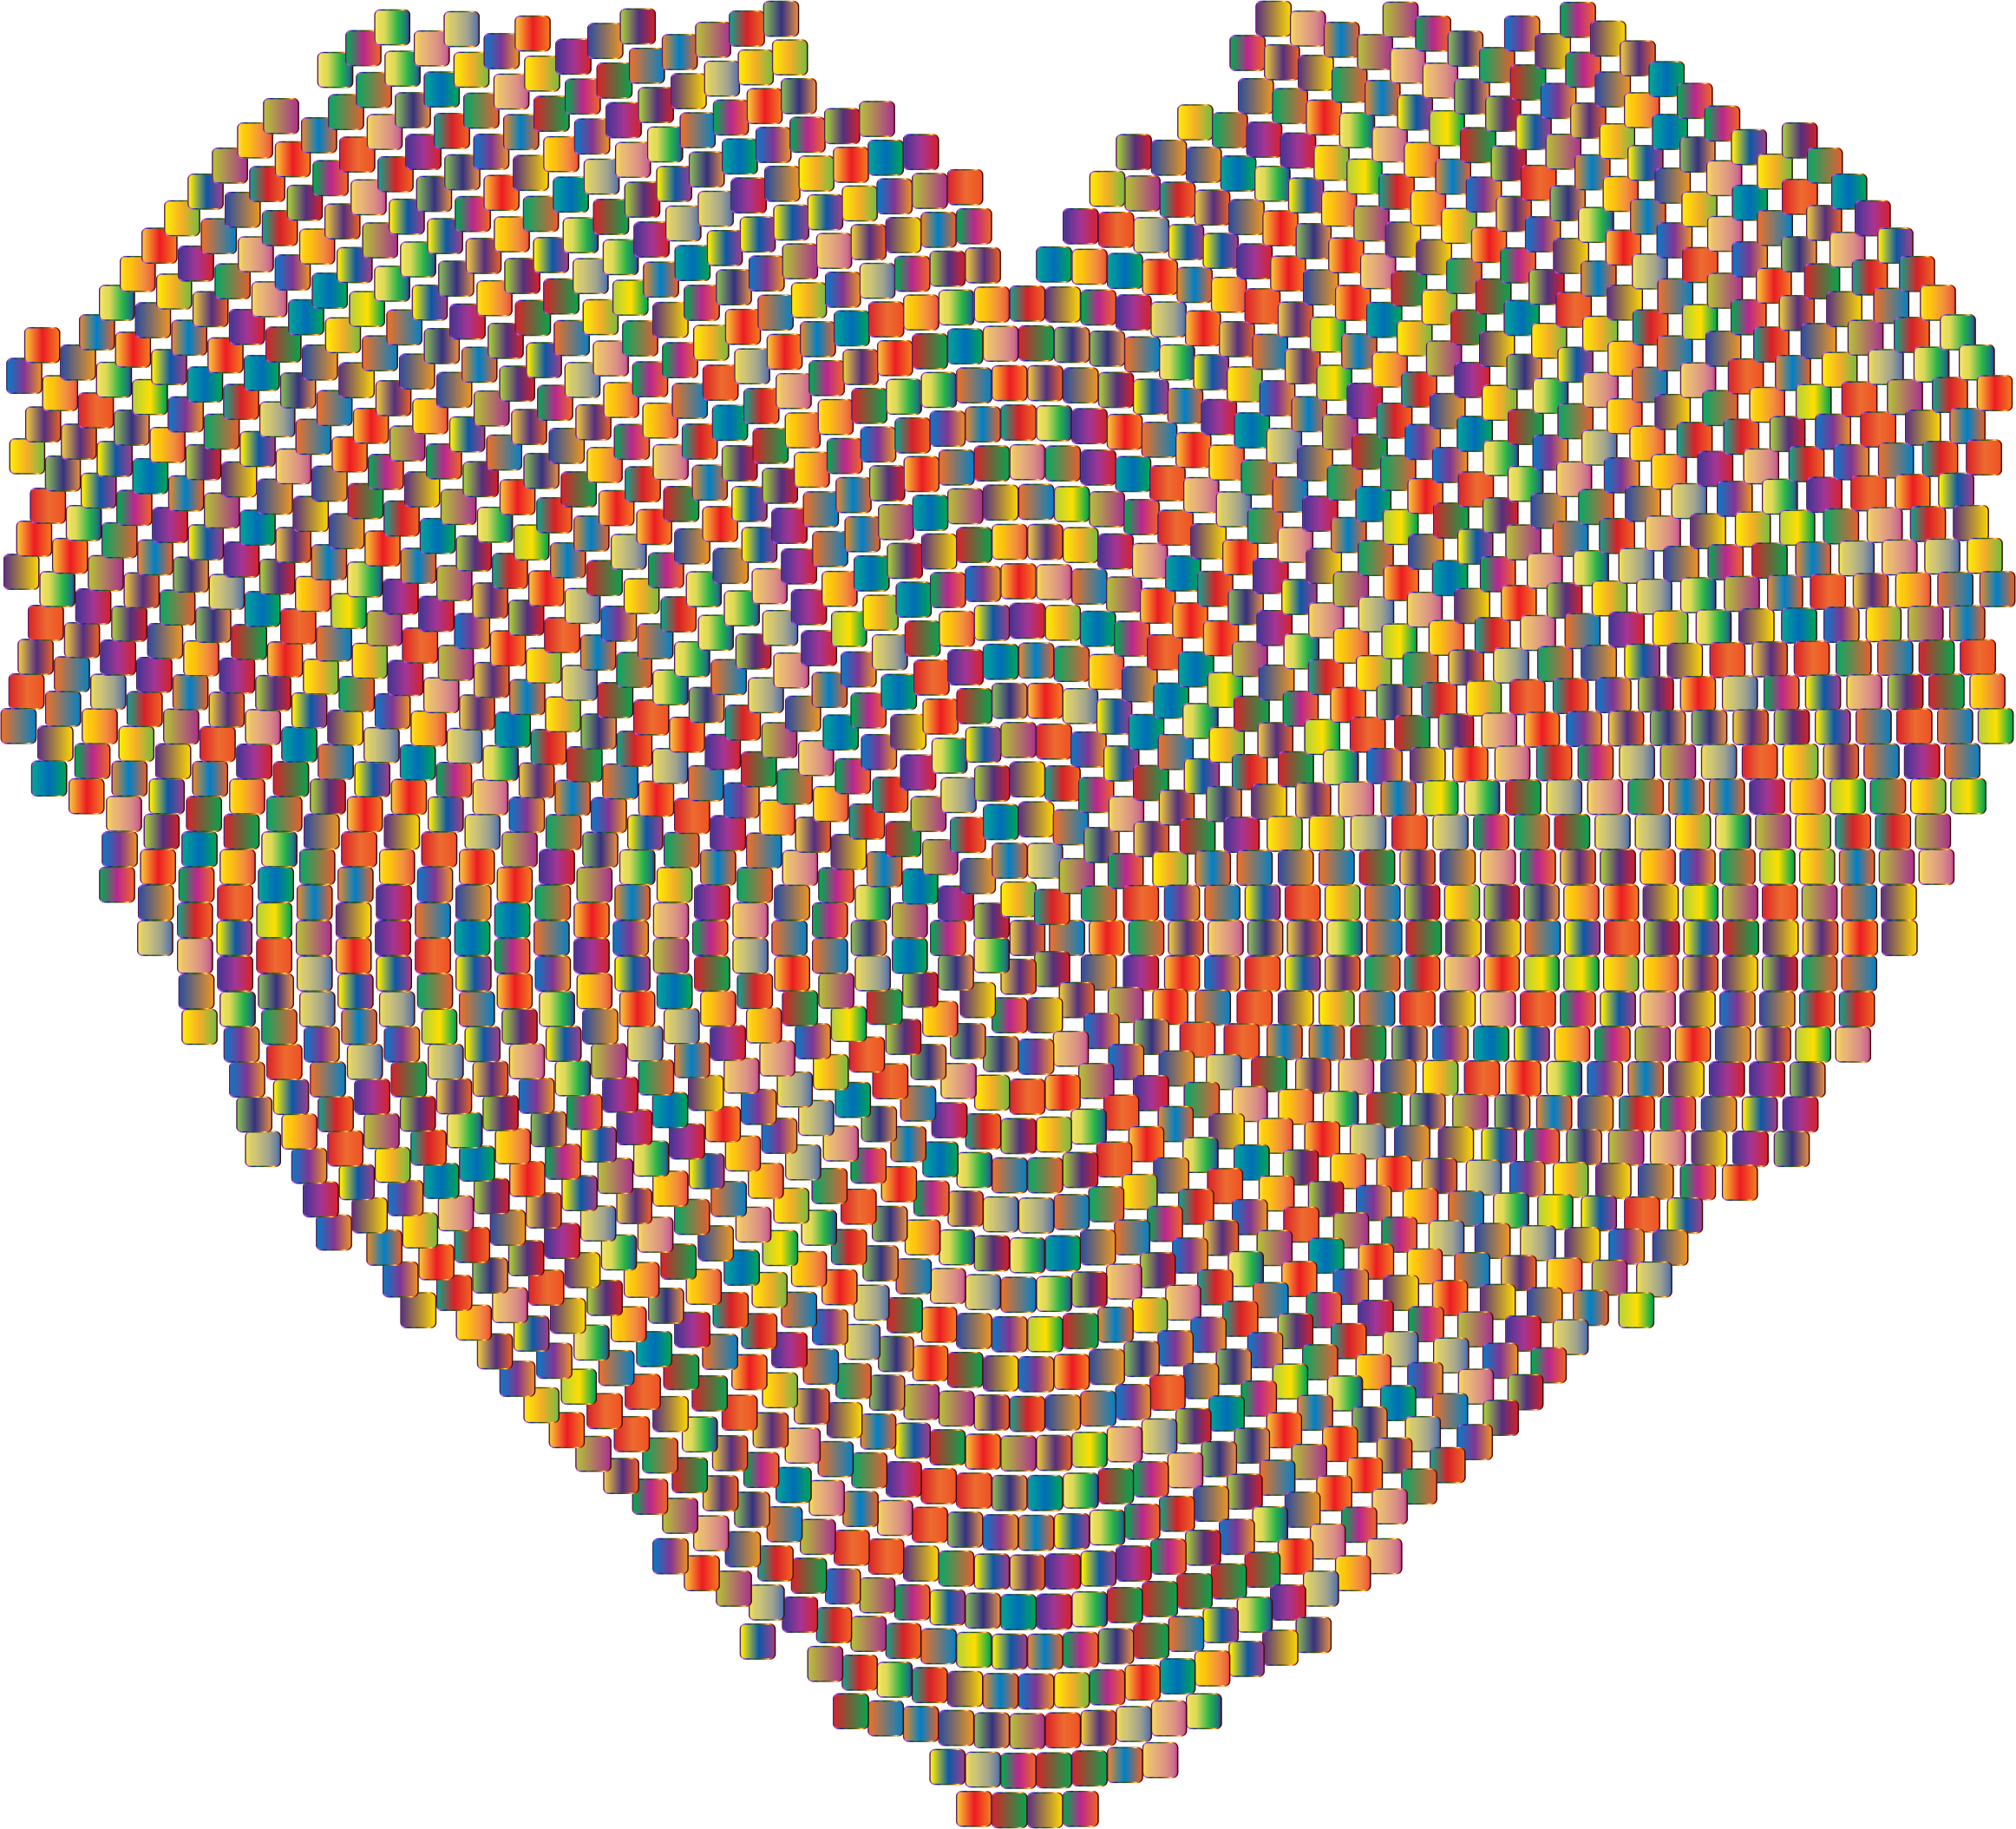 Colorful Mosaic Heart 2 by GDJ